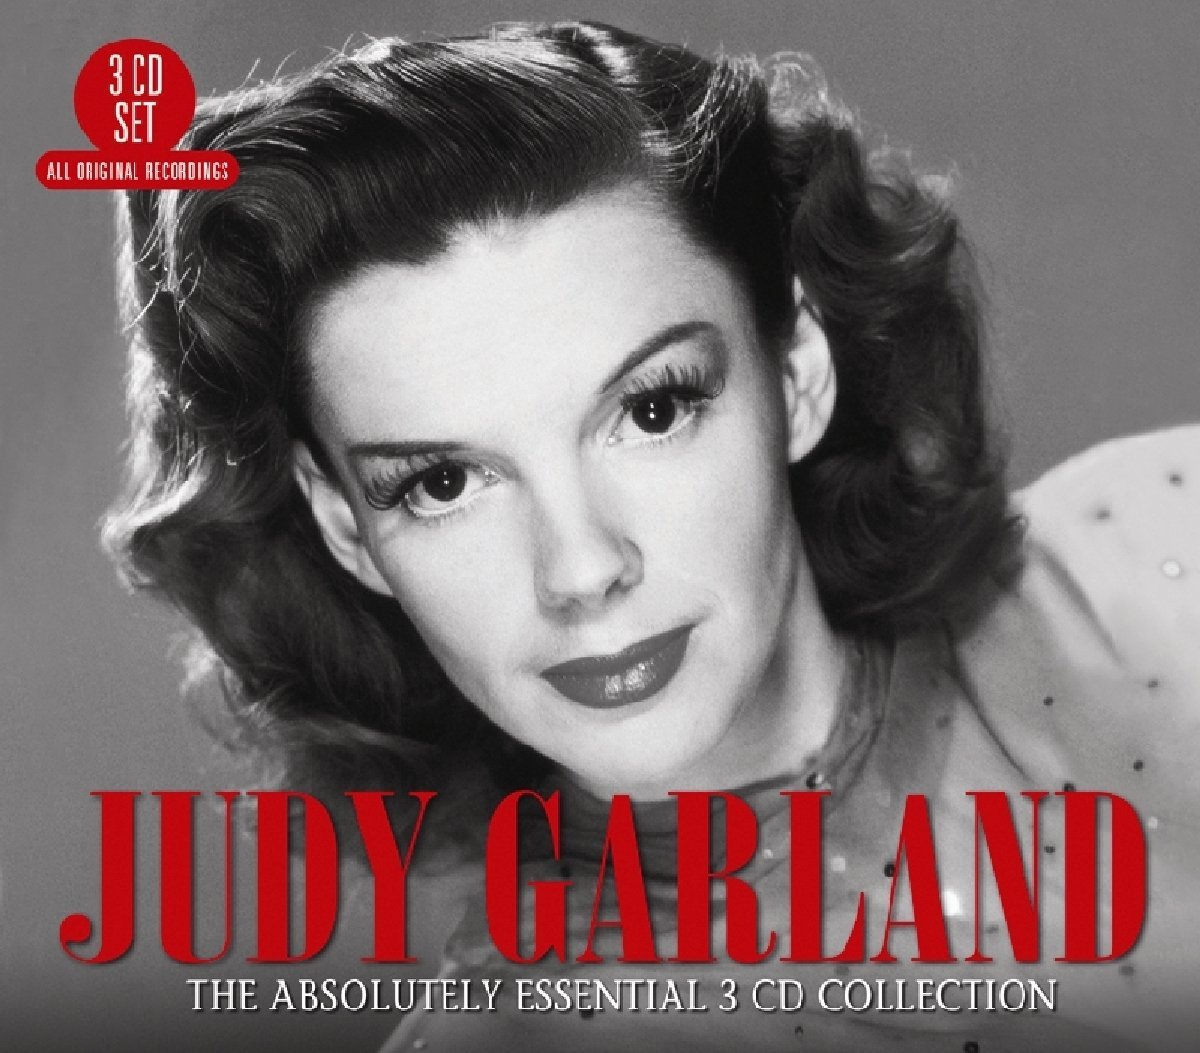 Judy Garland: The Absolutely Essential 3 CD Collection